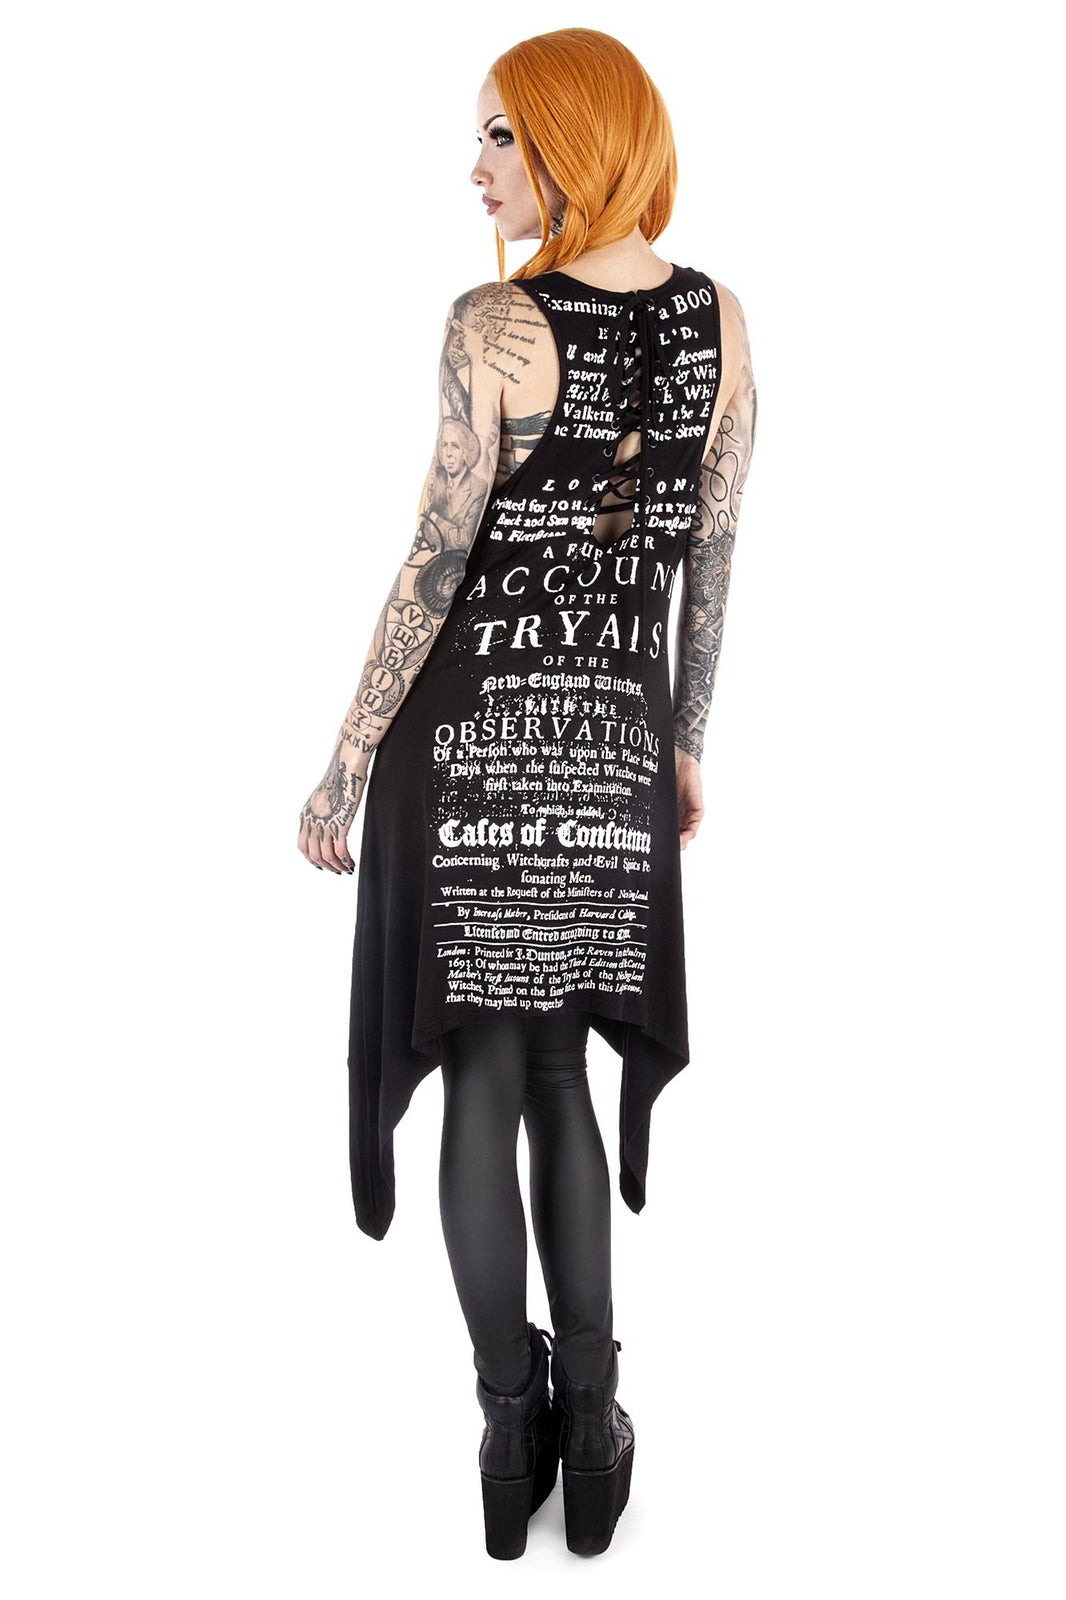 Tryals Cast-Out Vest Top [B]